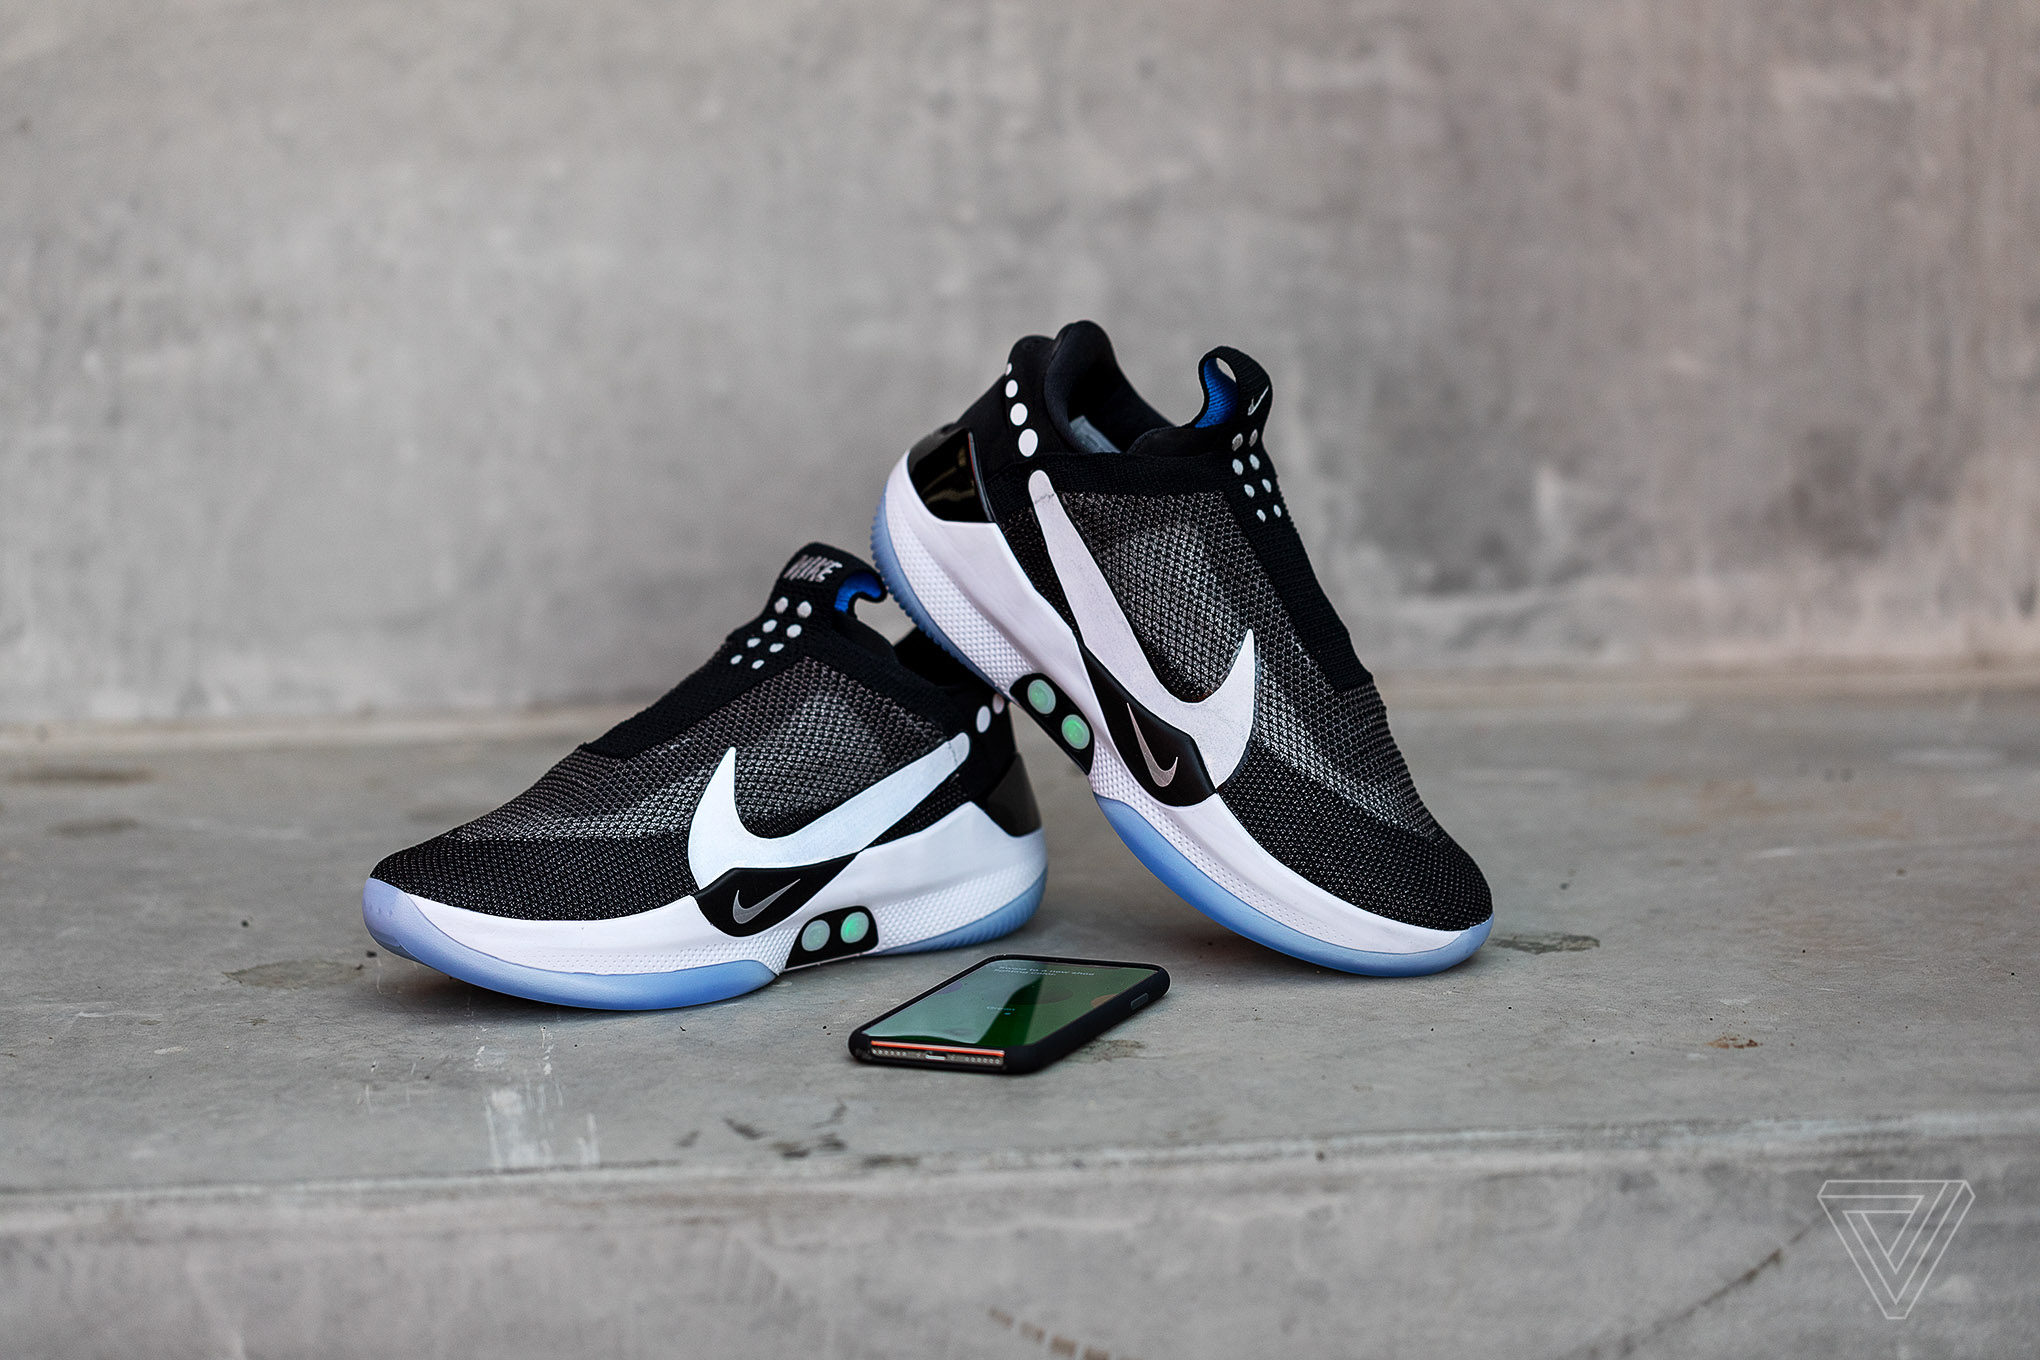 e318a1d3ff9a Nike s Adapt BB self-lacing sneakers let you tie your shoes from an ...